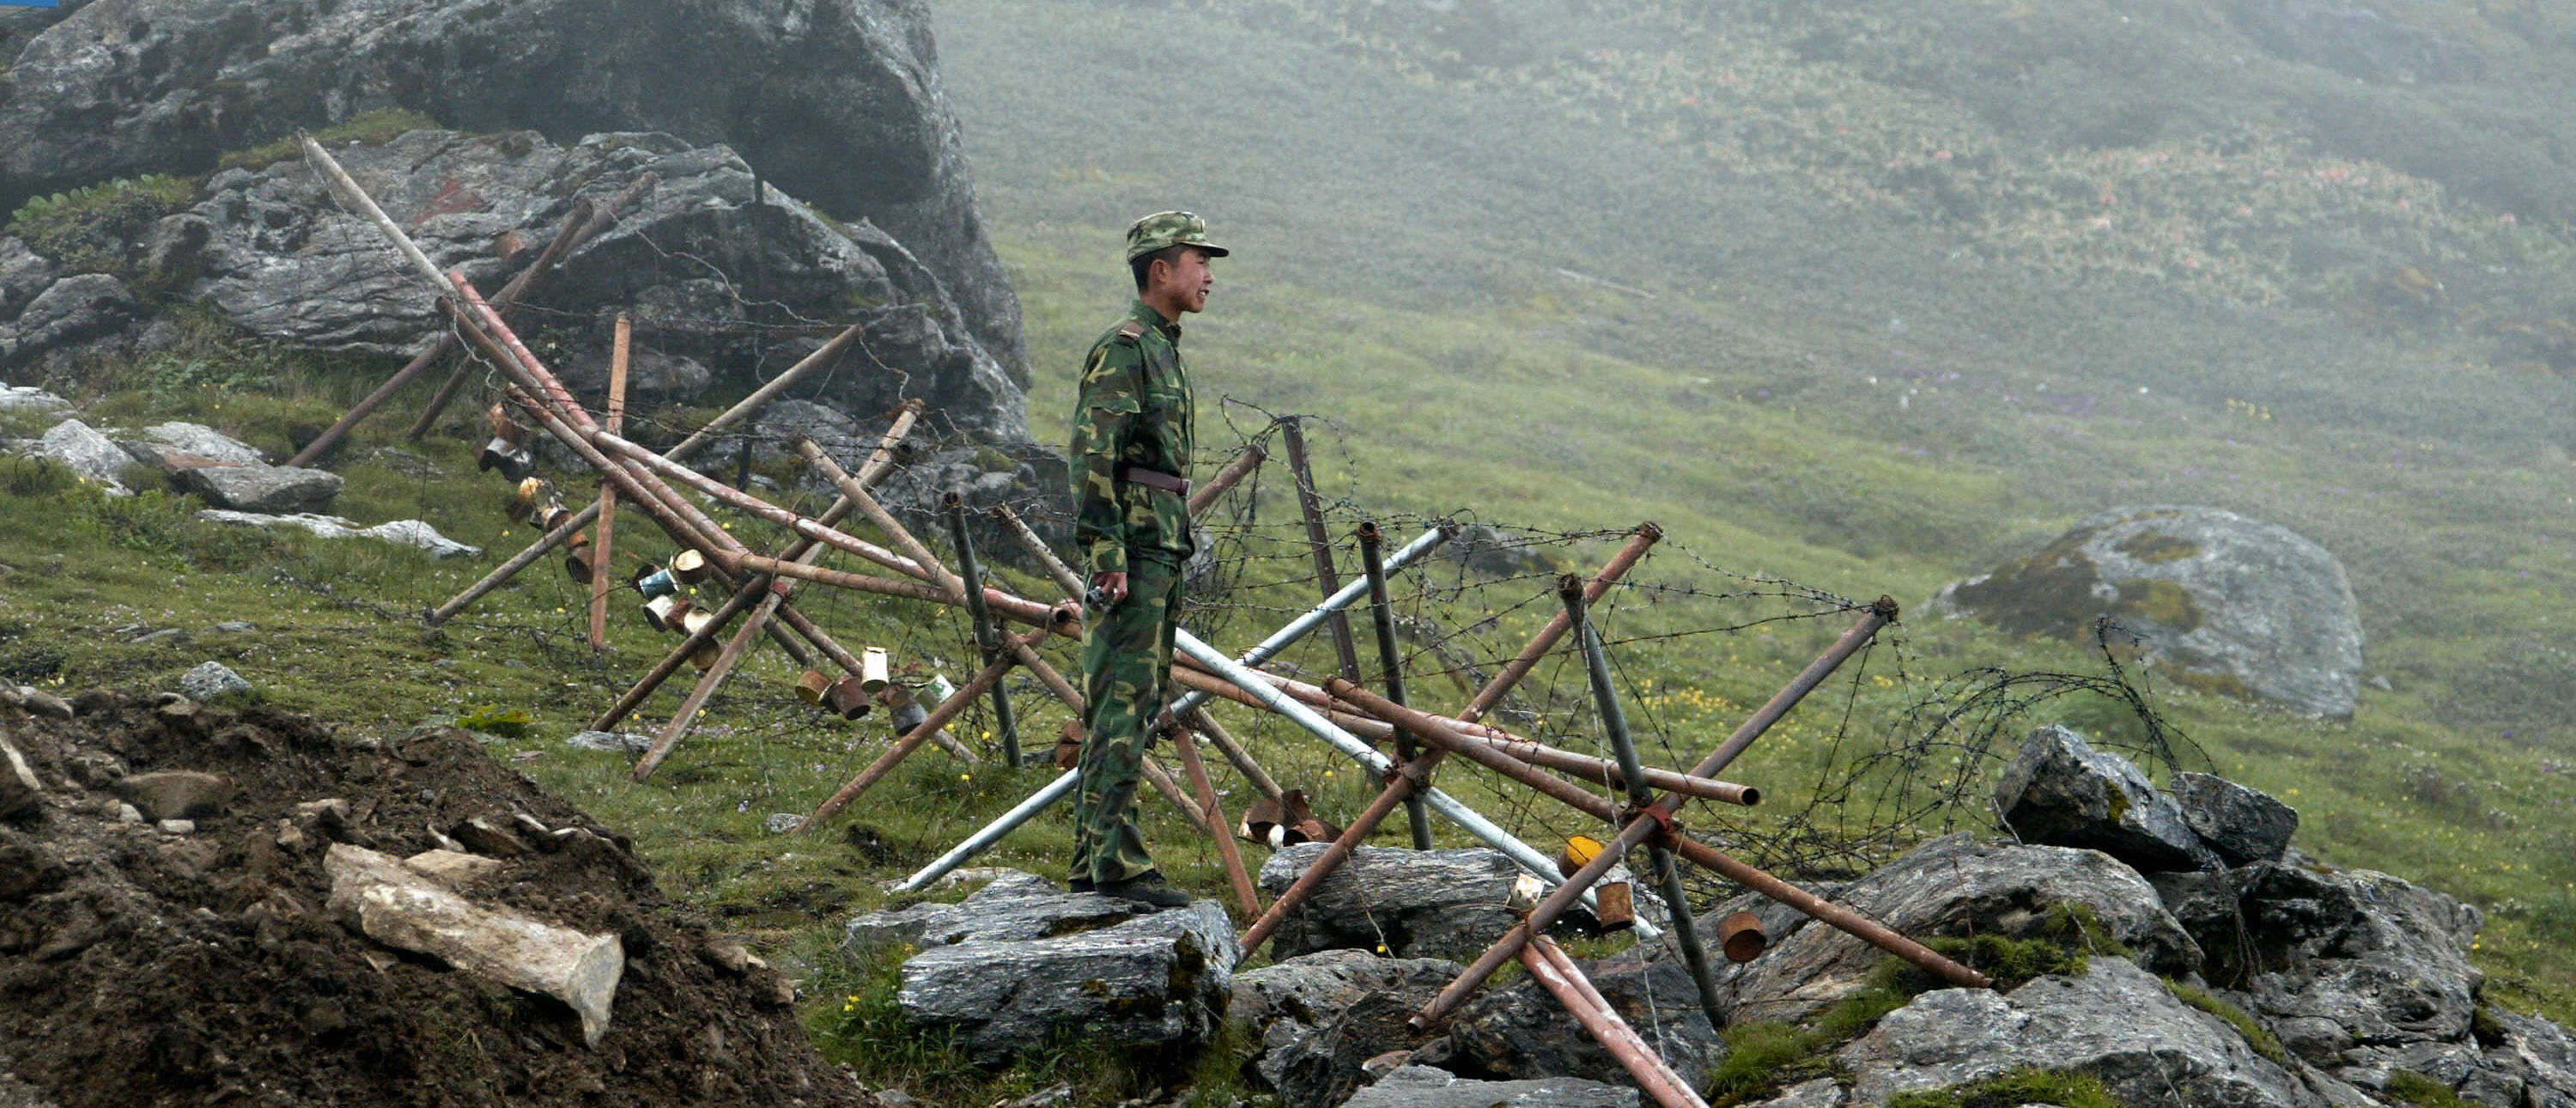 In this photograph taken on July 10, 2008, a Chinese soldier stands guard on the Chinese side of the ancient Nathu La border crossing between India and China. When the two Asian giants opened the 4,500-metre-high (15,000 feet) pass in 2006 to improve ties dogged by a bitter war in 1962 that saw the route closed for 44 years, many on both sides hoped it would boost trade. Two years on, optimism has given way to despair as the flow of traders has shrunk to a trickle because of red tape, poor facilities and sub-standard roads in India's remote northeastern mountainous state of Sikkim. AFP PHOTO/Diptendu DUTTA (Photo credit should read DIPTENDU DUTTA/AFP via Getty Images)